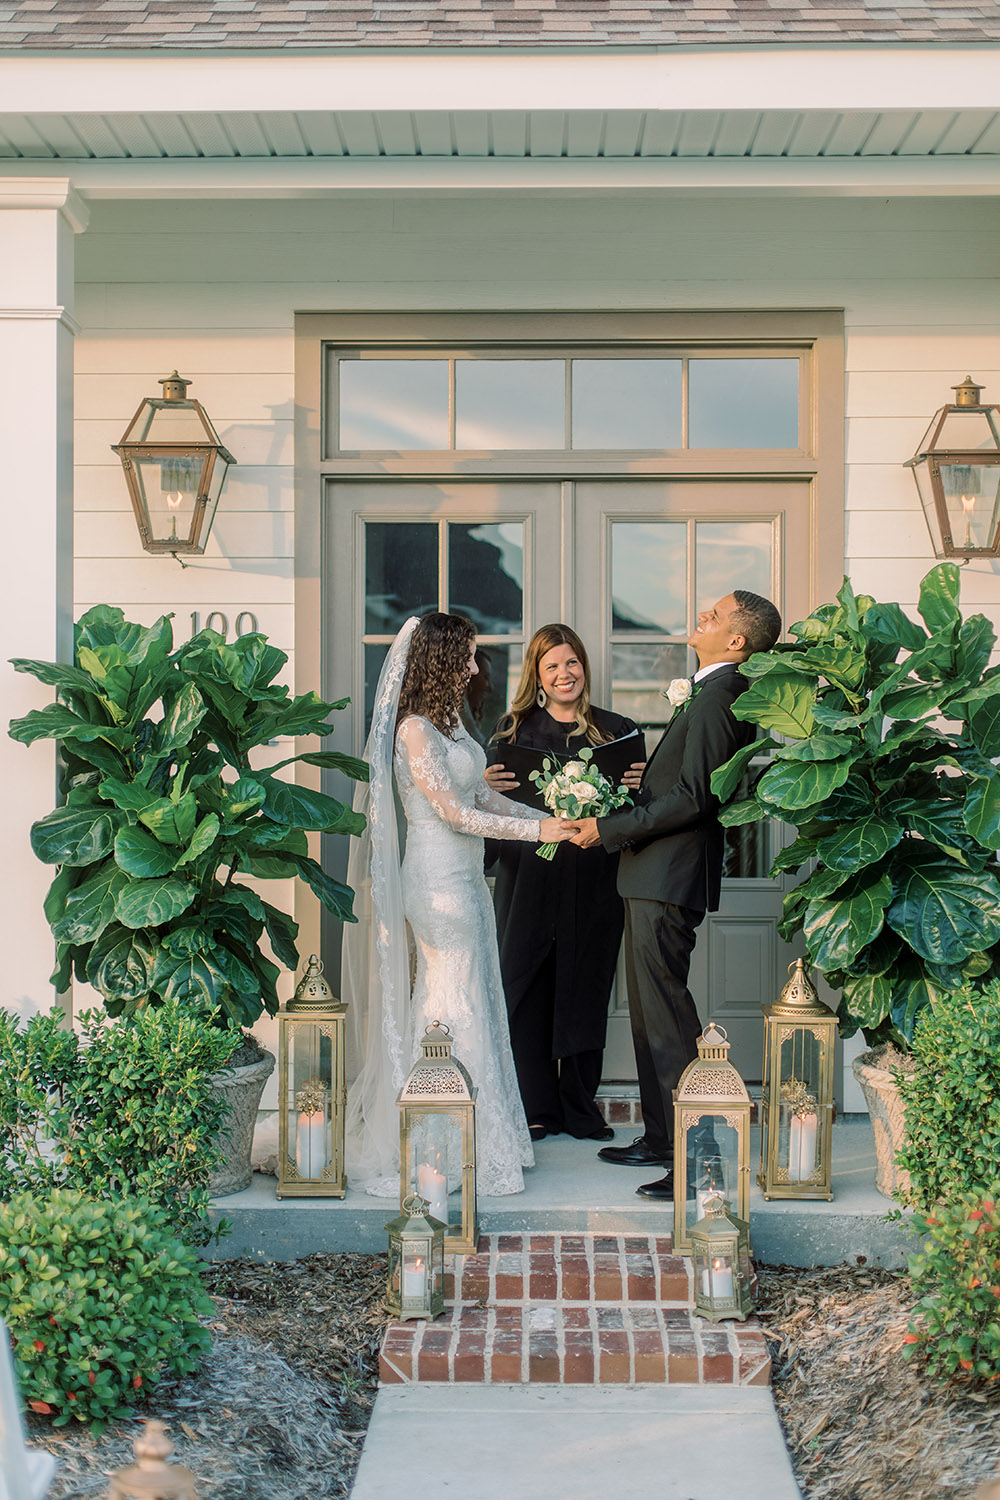 A bride and groom exchange vows during a front porch wedding ceremony. Photo: Ashley Kristen Photography